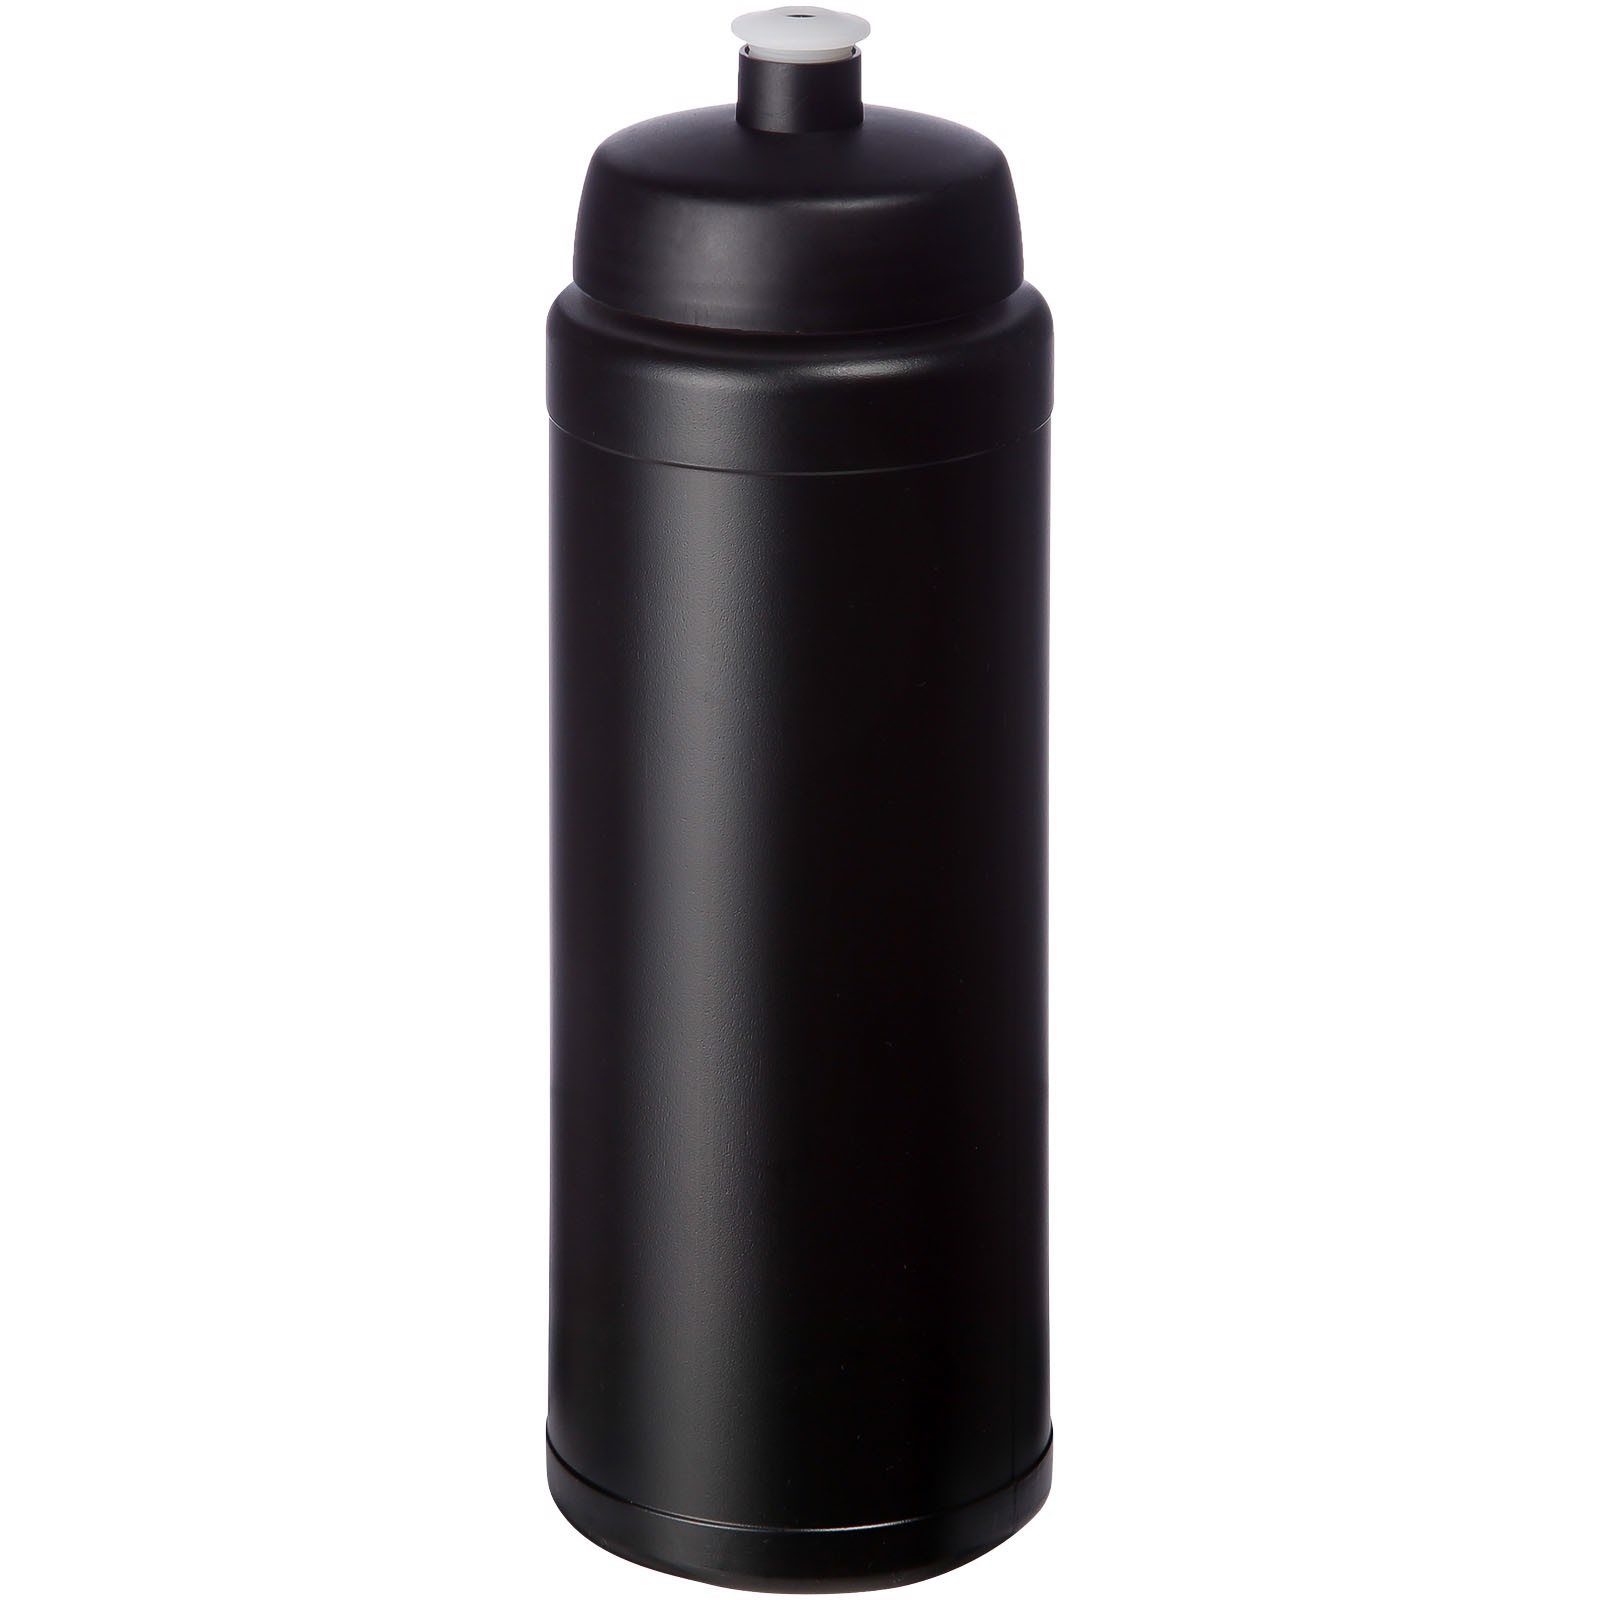 Baseline® Plus grip 750 ml sports lid sport bottle - Solid black